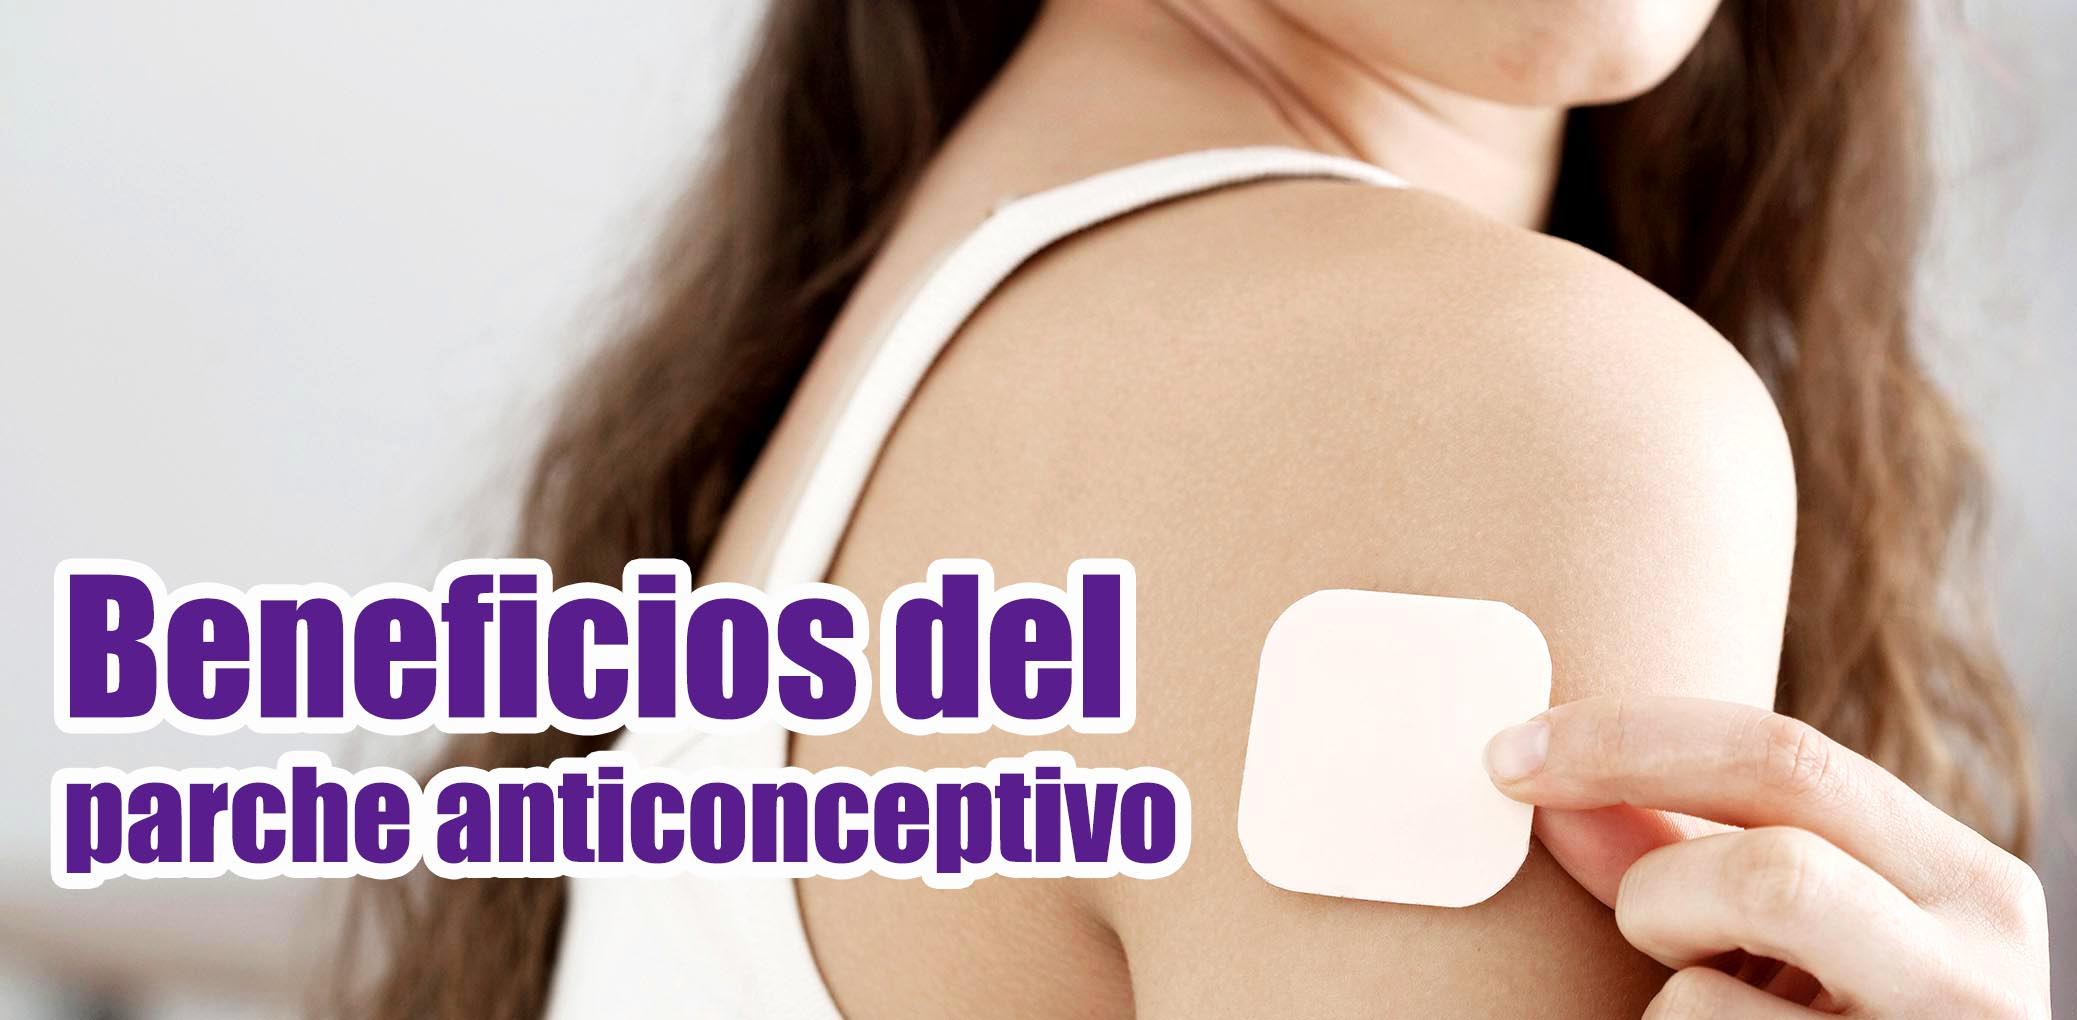 5 Beneficios del Parche Anticonceptivo